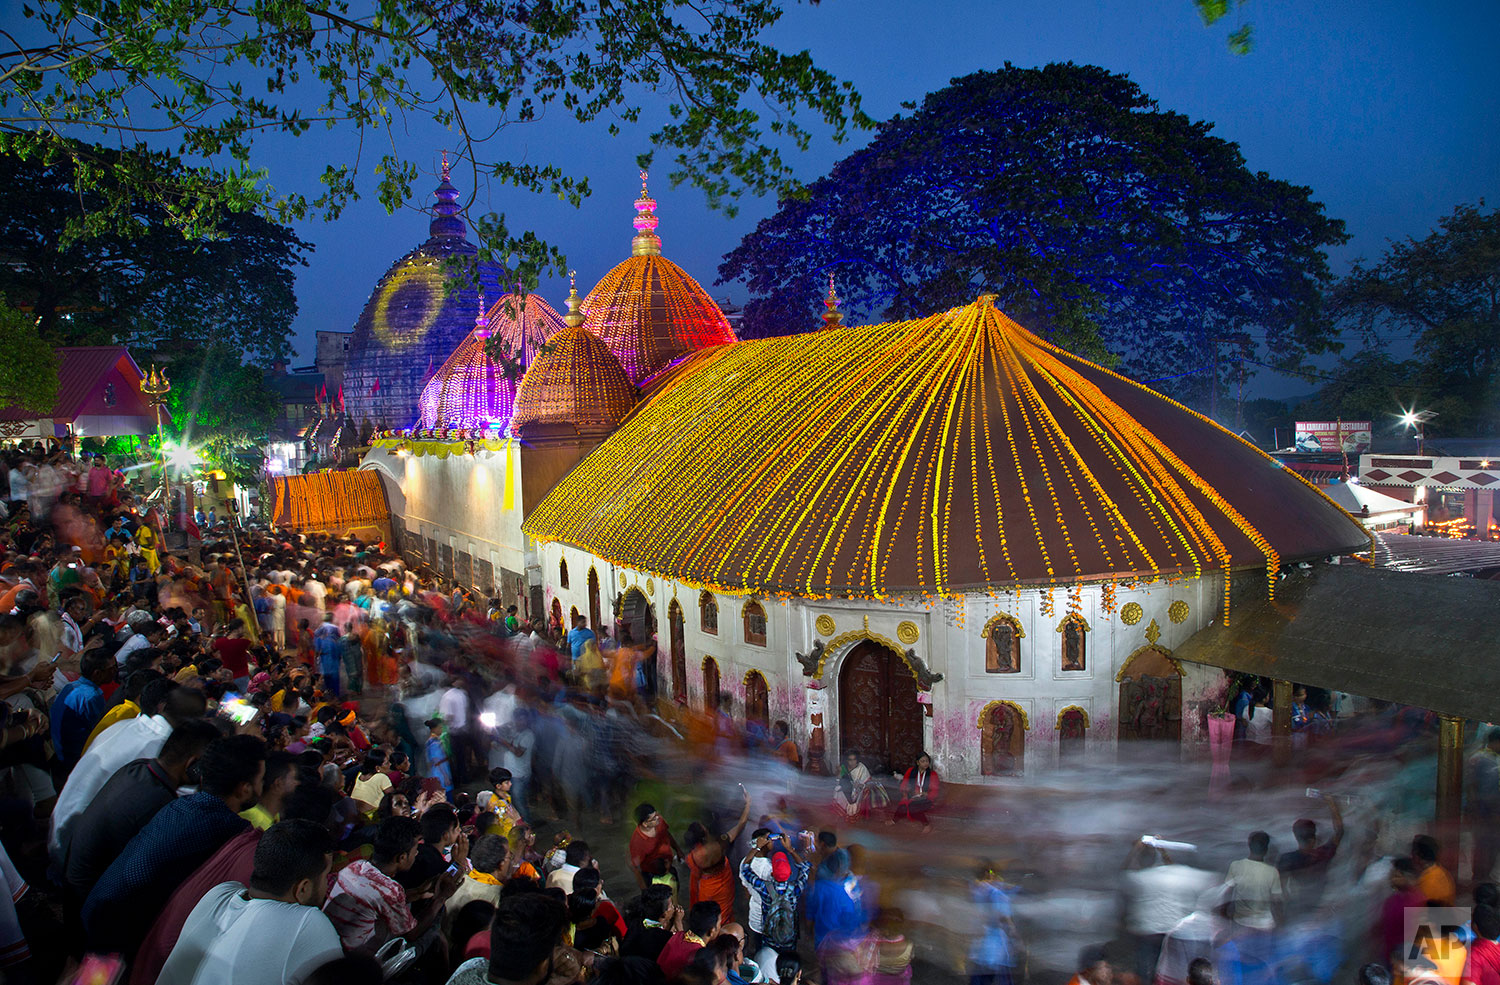 devotees gather at the Kamakhya temple for the Ambubachi festival in Gauhati, India, June 25, 2019 . The temple is presided over by the goddess Kamakhya, the most important goddess of tantric worship, an esoteric form of Hinduism. The four-day Ambubachi festival is a celebration of Kamakhya's yearly menstrual cycle, and it brings hundreds of thousands of devotees to the temple. (AP Photo/Anupam Nath)